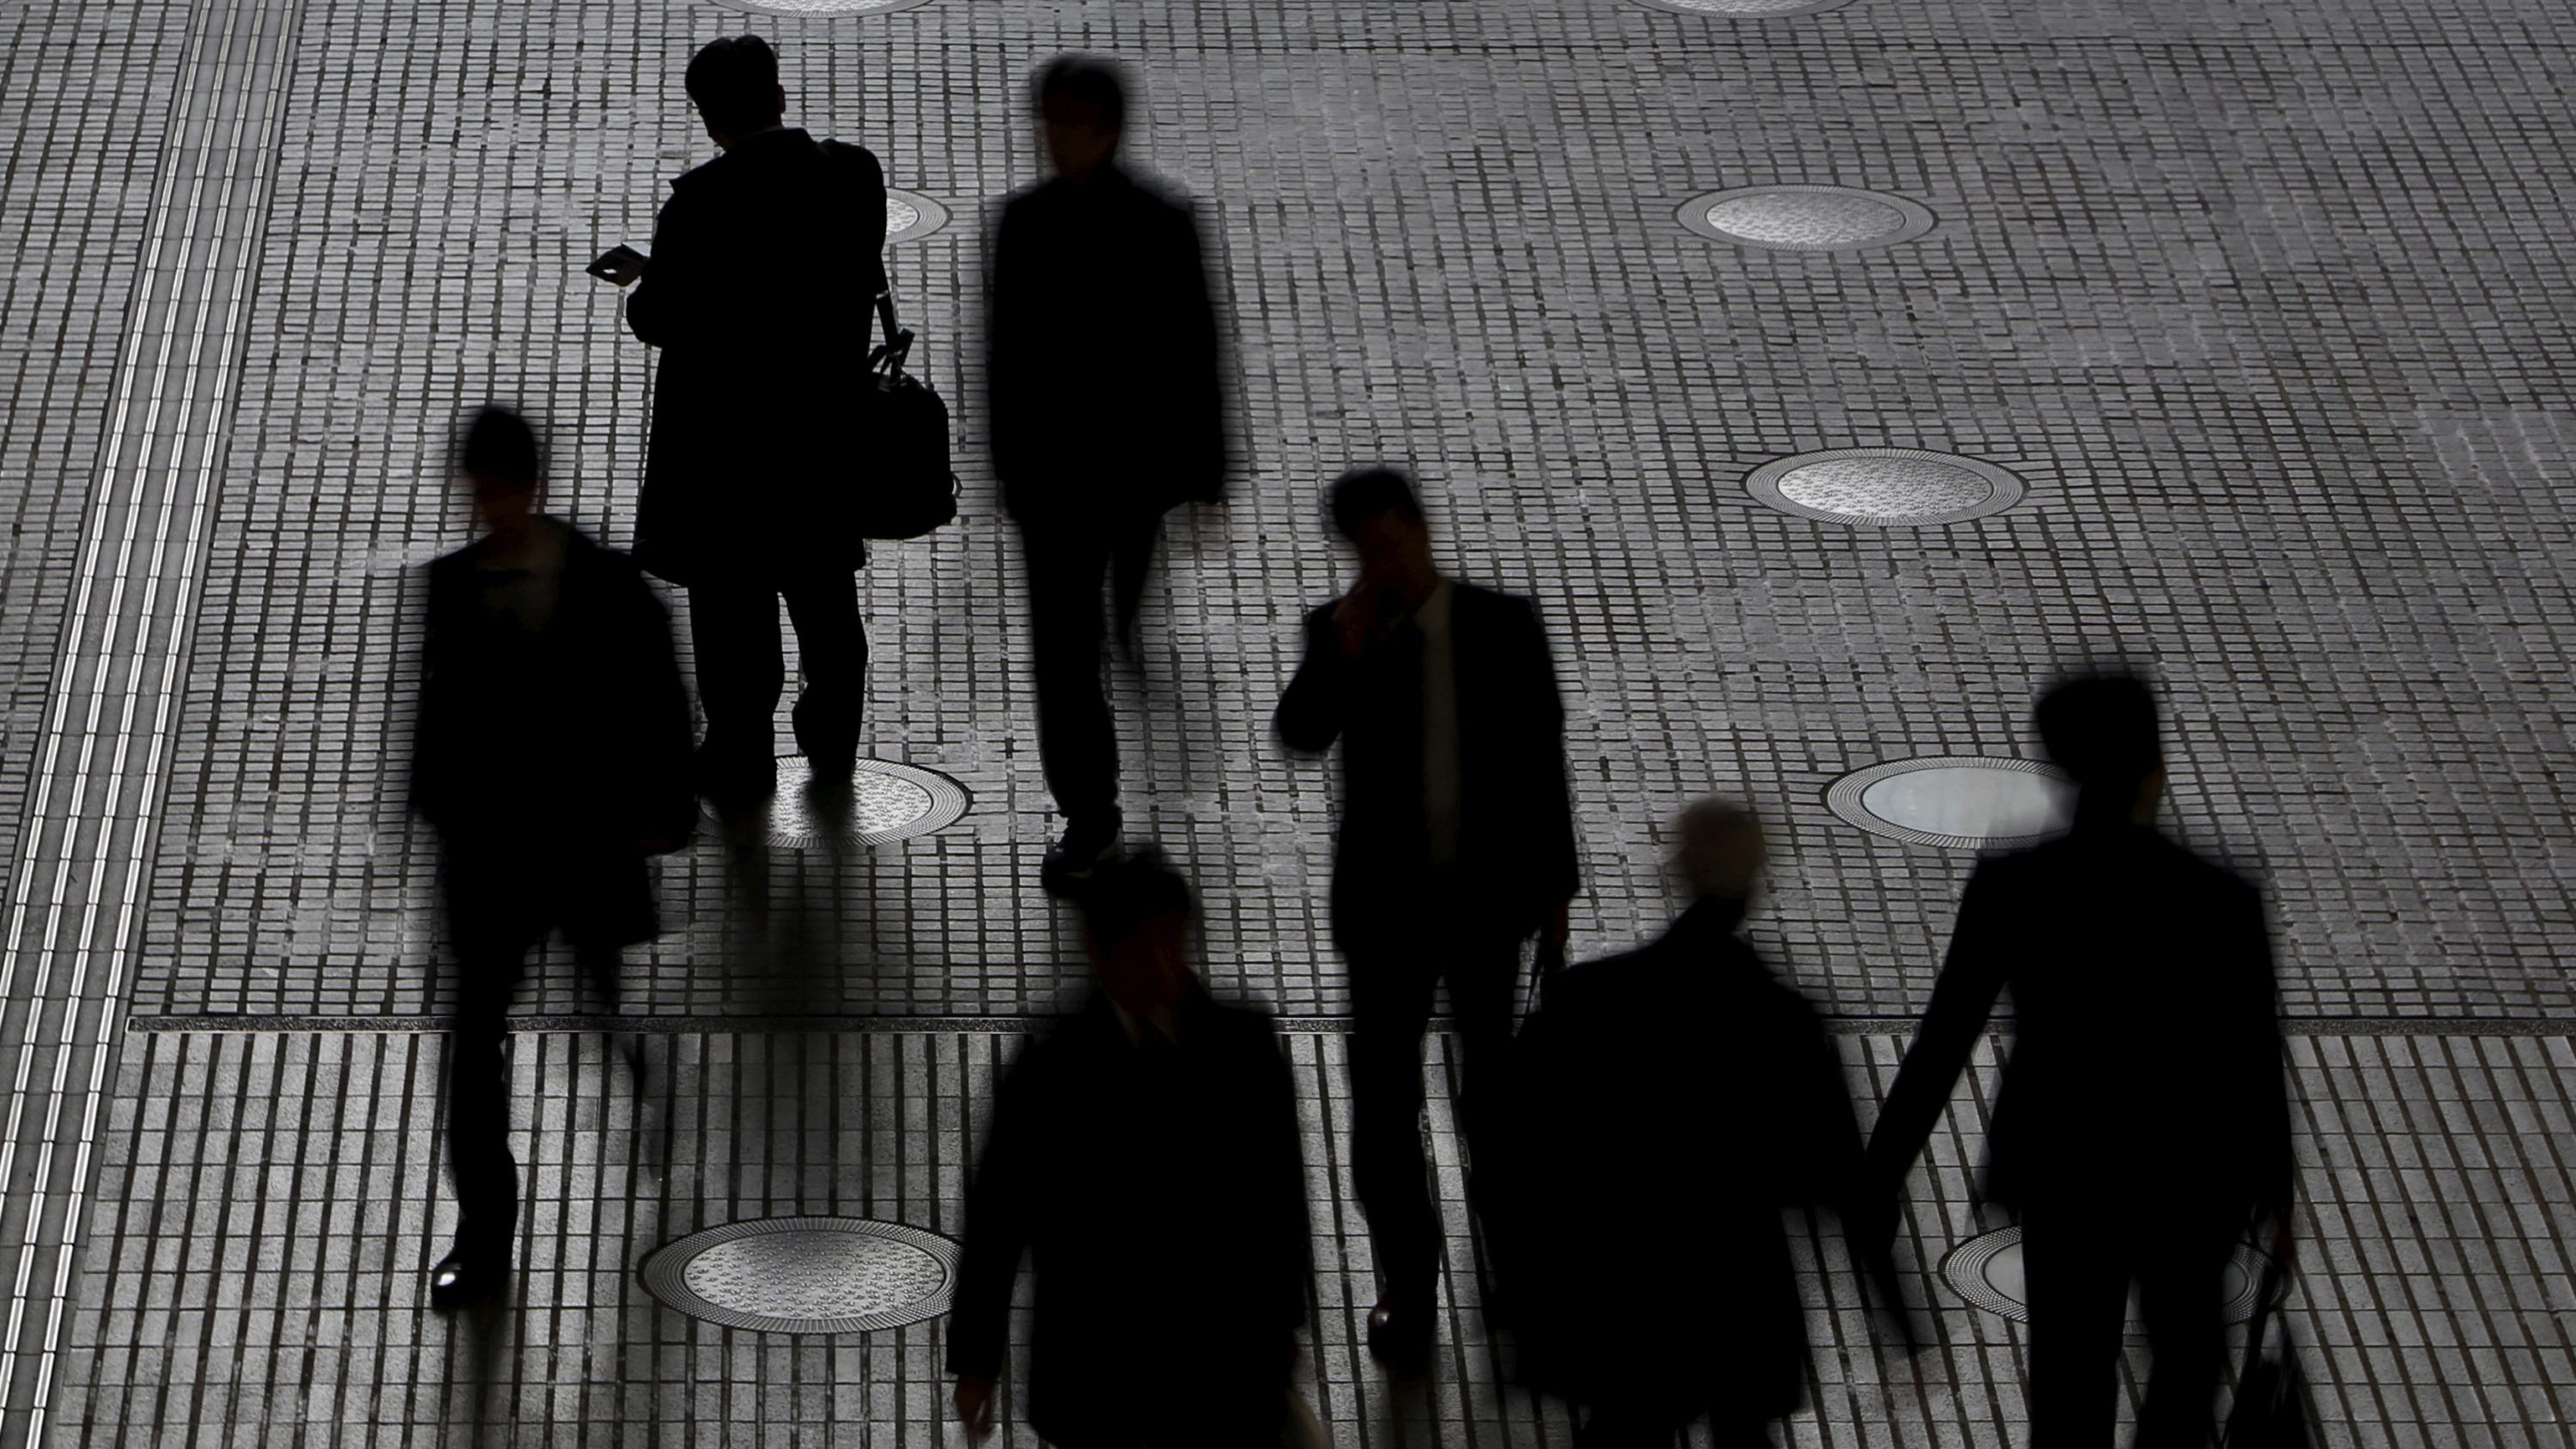 People walk at an office building at a business district in Tokyo, Japan, February 29, 2016.